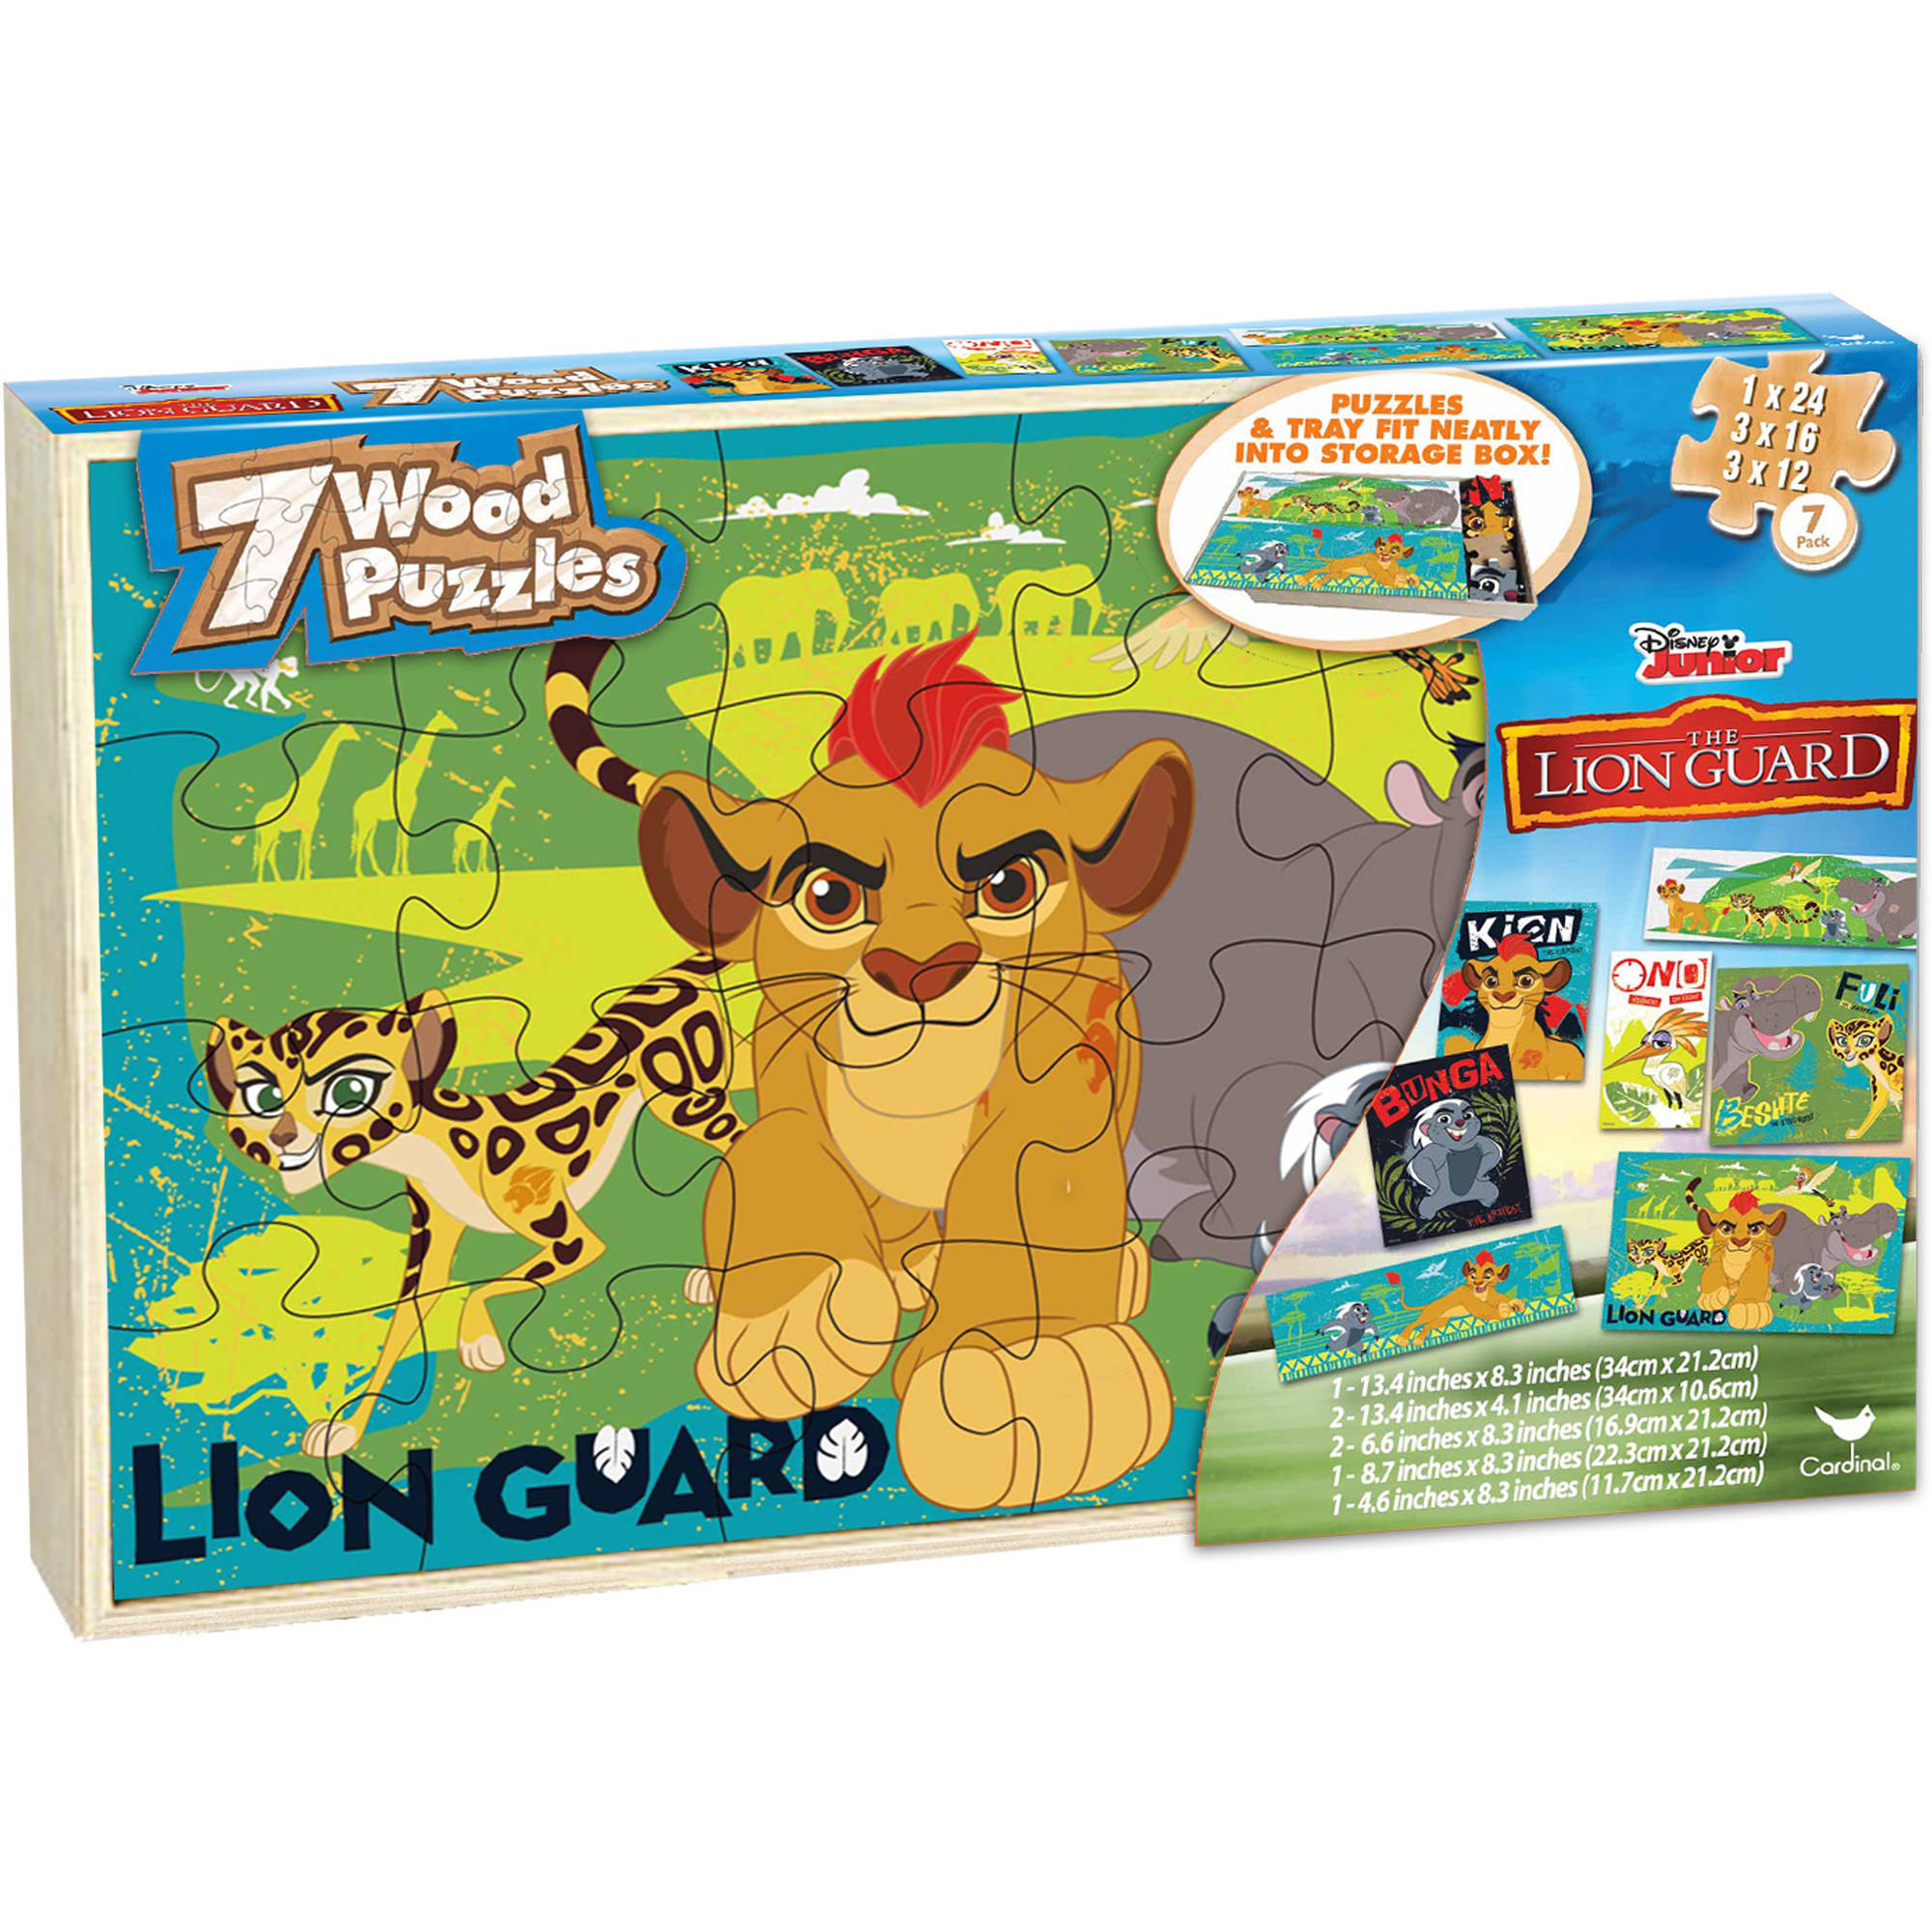 Disney Lion Guard Set Of 7 Wood Jigsaw Puzzles In Wood